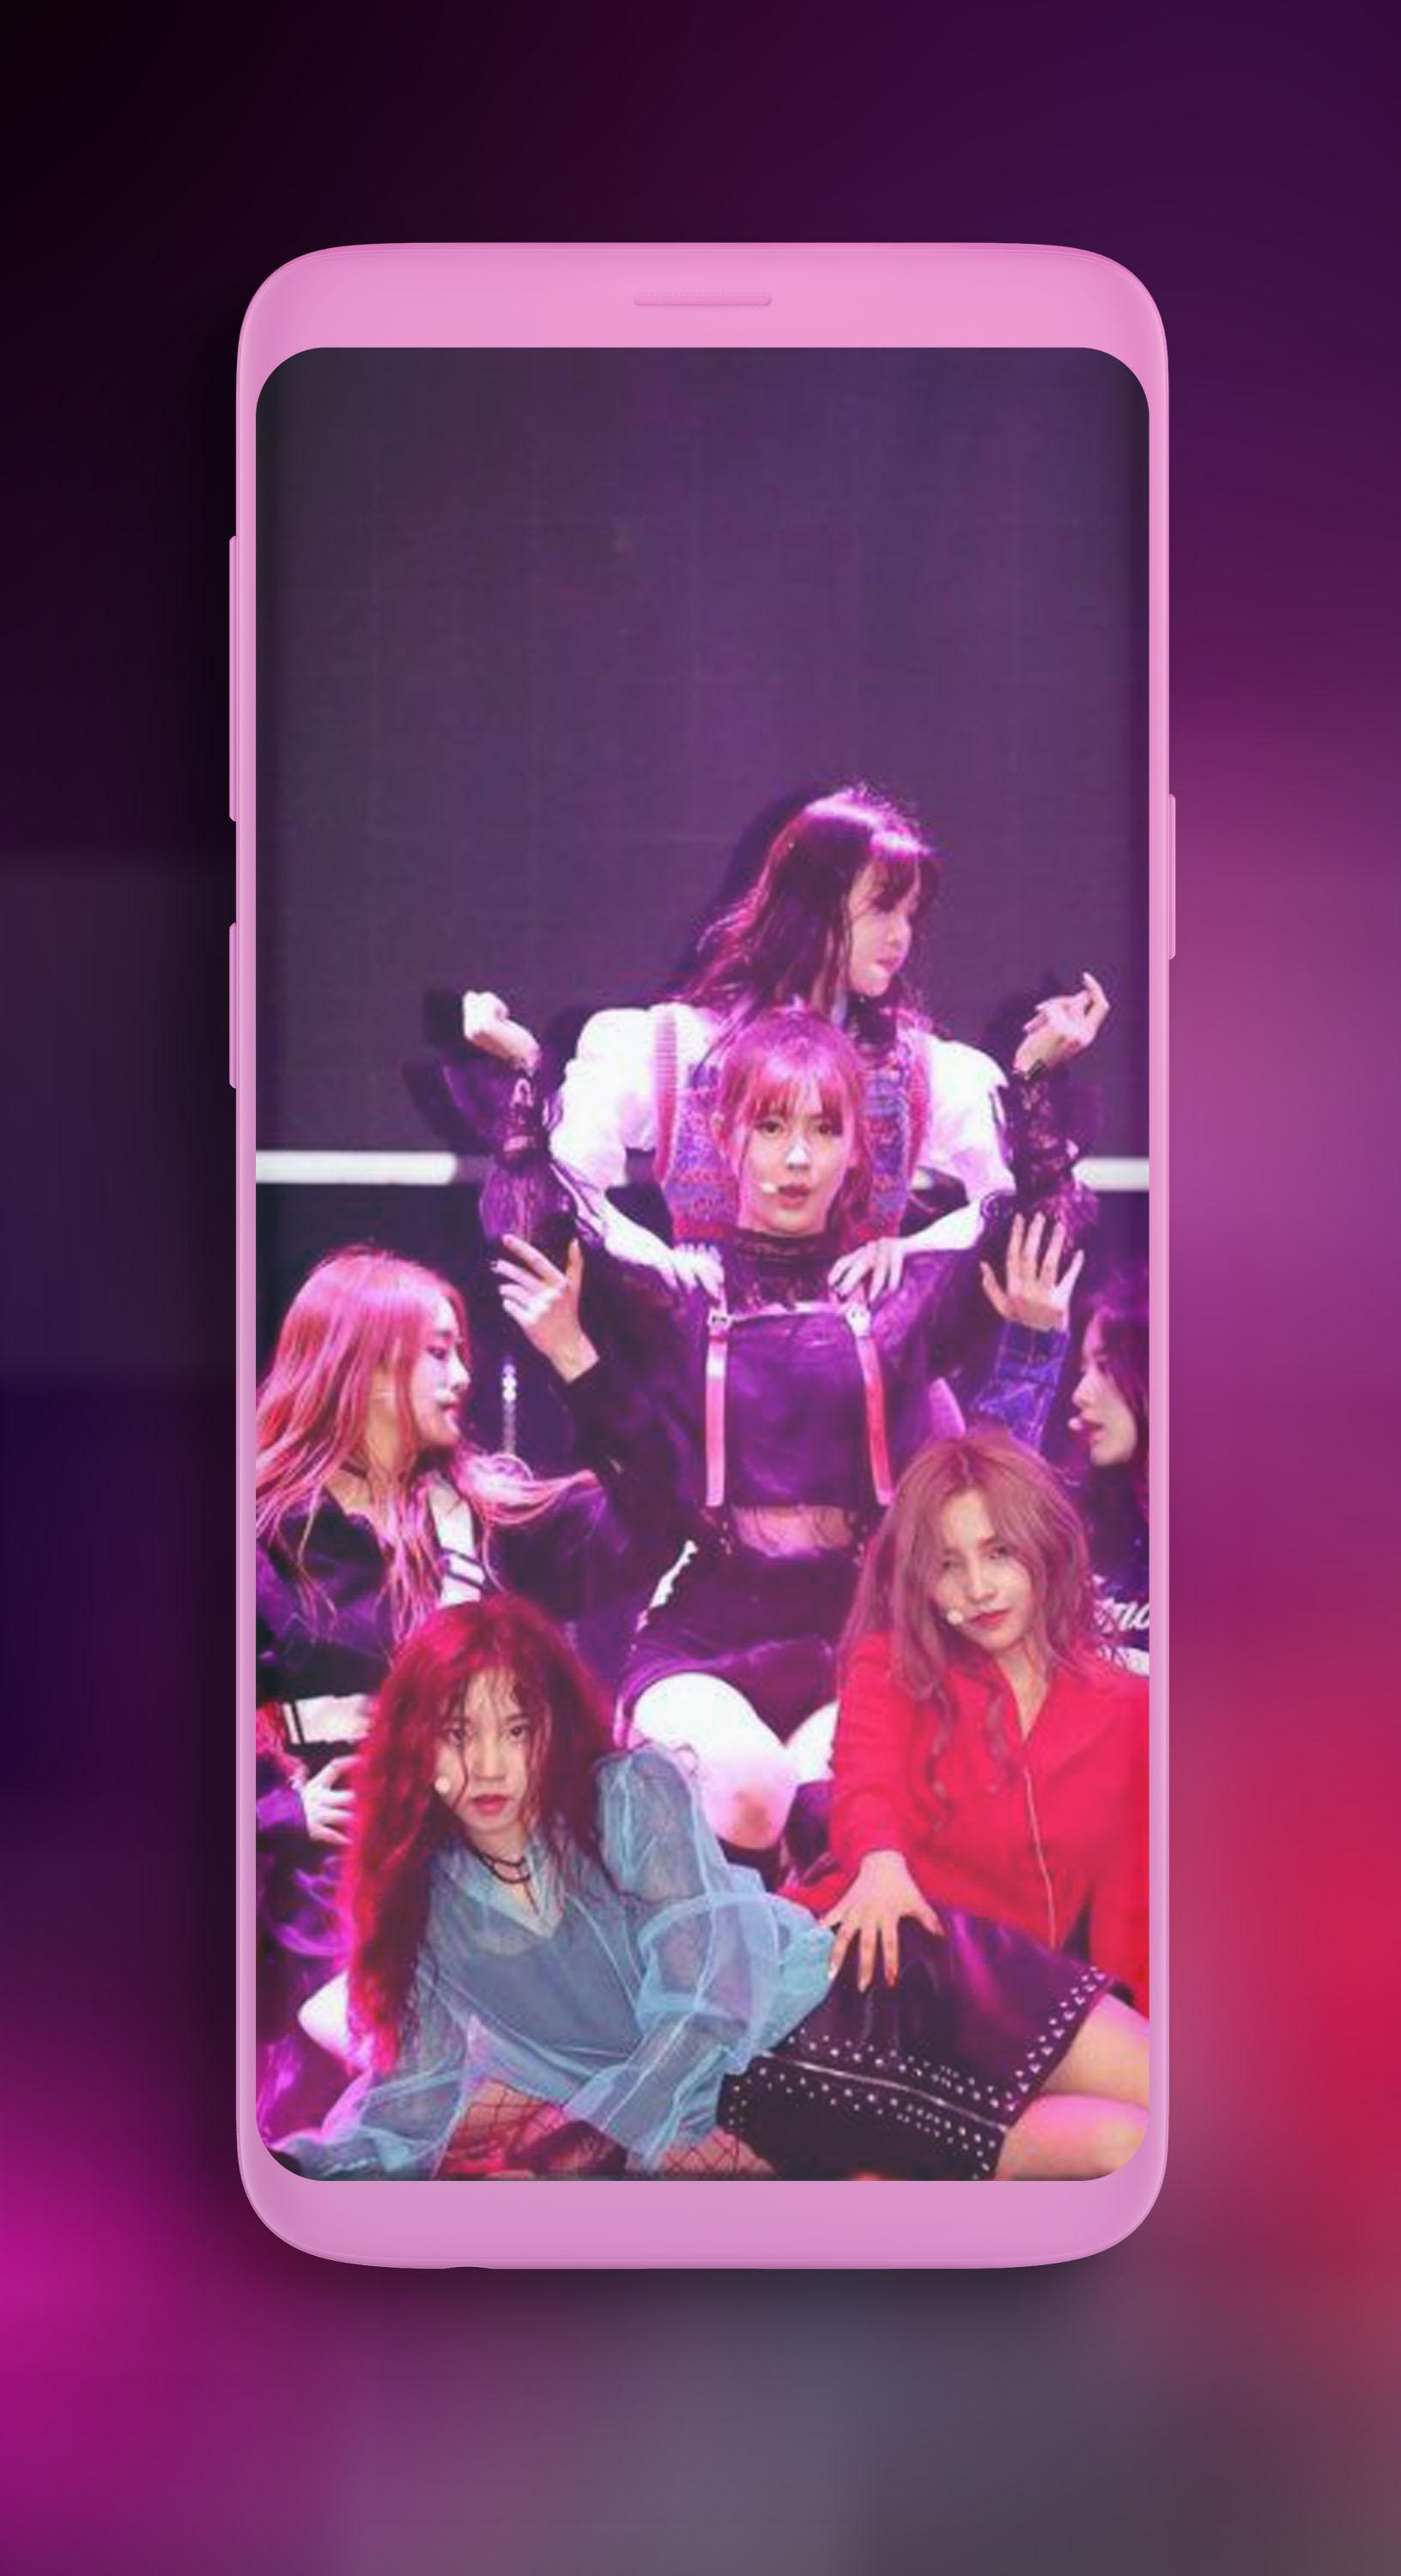 Everglow Wallpaper Kpop Hd New For Android Apk Download